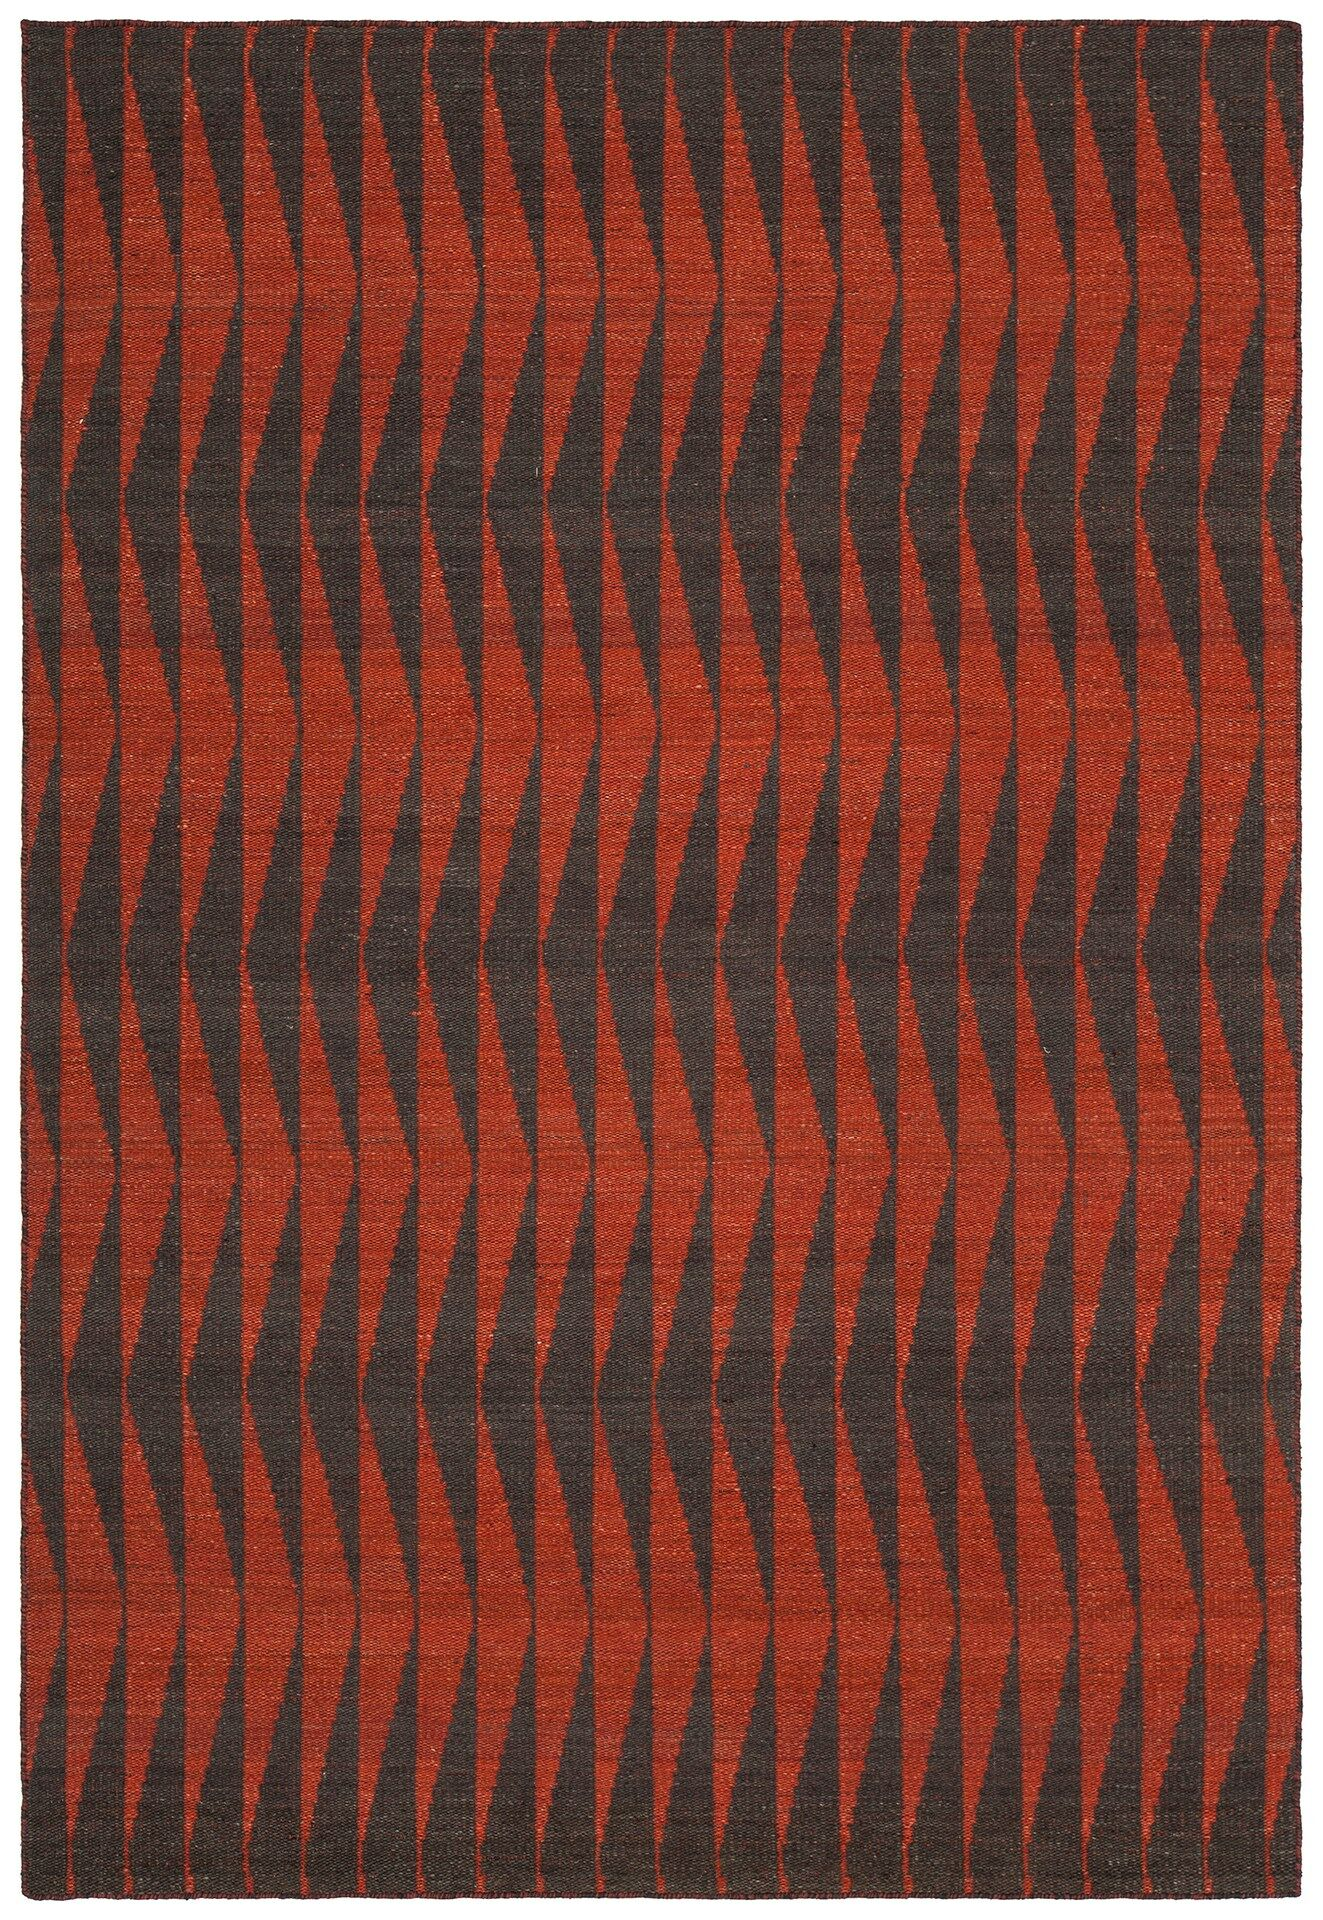 Reagan Hand-Woven Wool Red Area Rug Rug Size: Rectangle 5' x 7'6